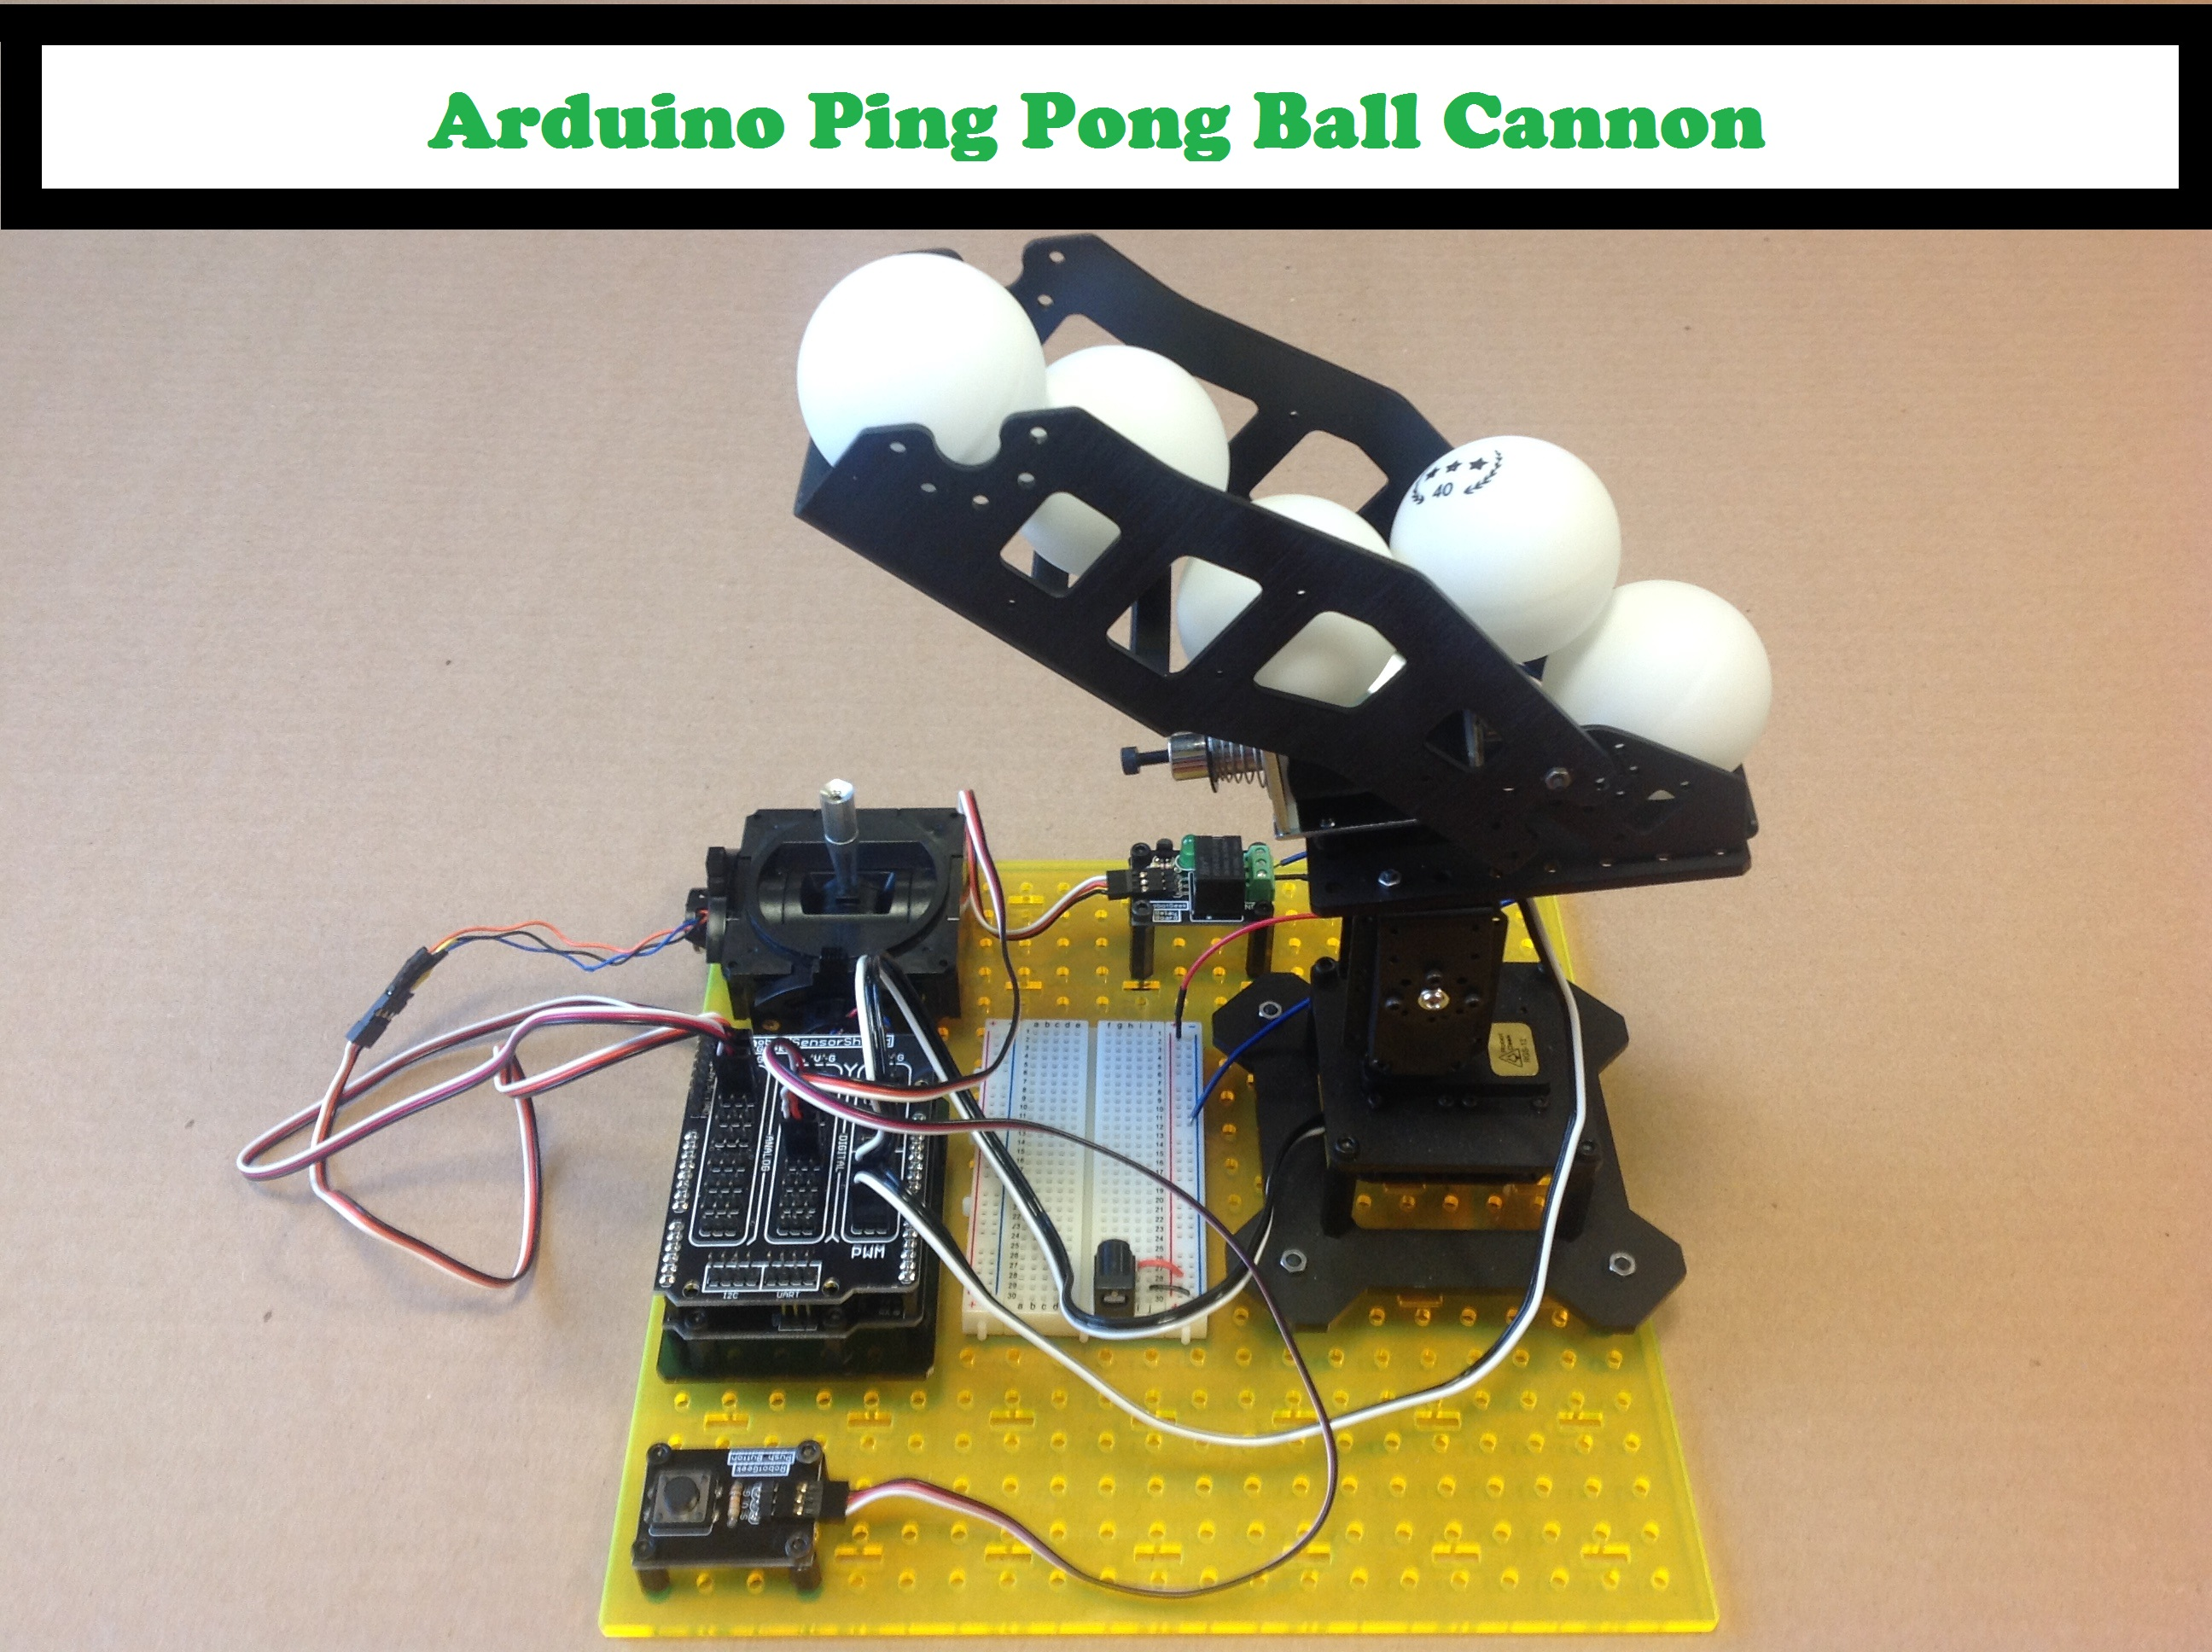 Picture of Arduino Ping Pong Ball Cannon